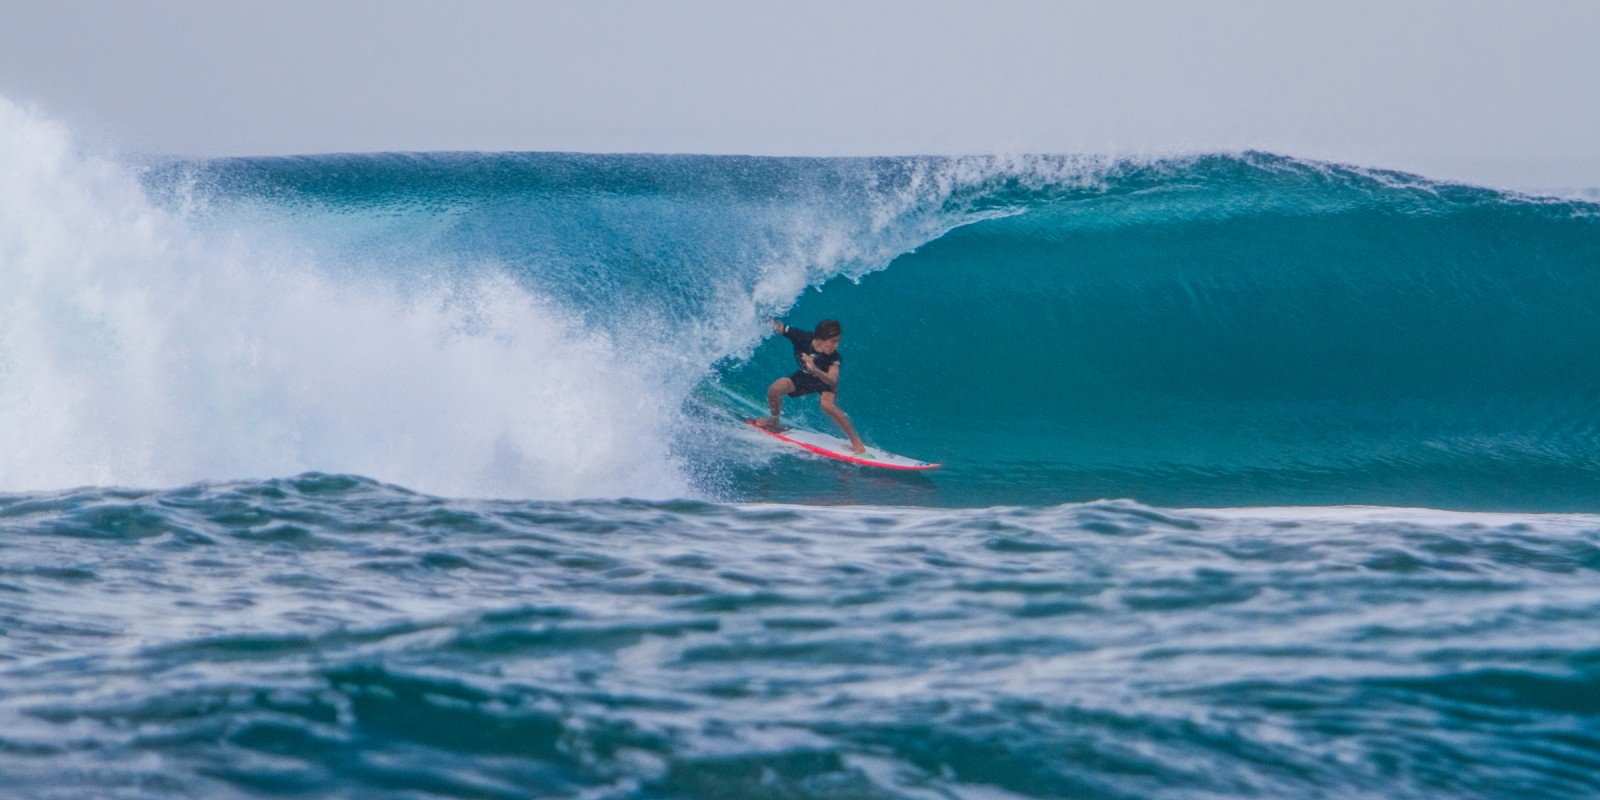 New mexican ambassador, Jhony Corzo surfer /Surfing Team